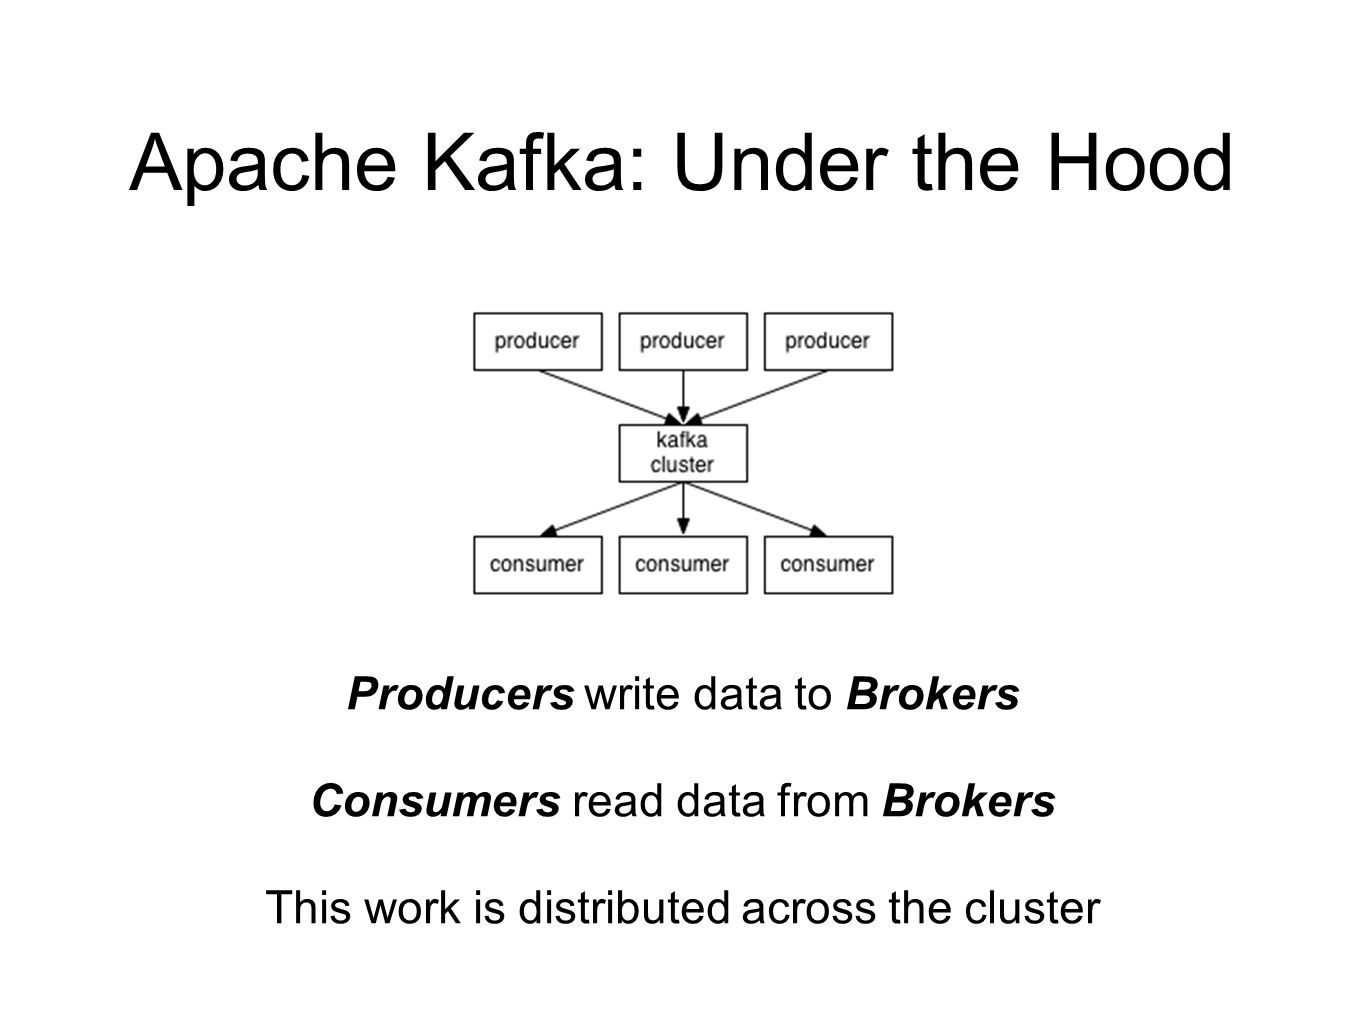 Apache Kafka: Under the Hood Producers write data to Brokers Consumers read data from Brokers This work is distributed across the cluster